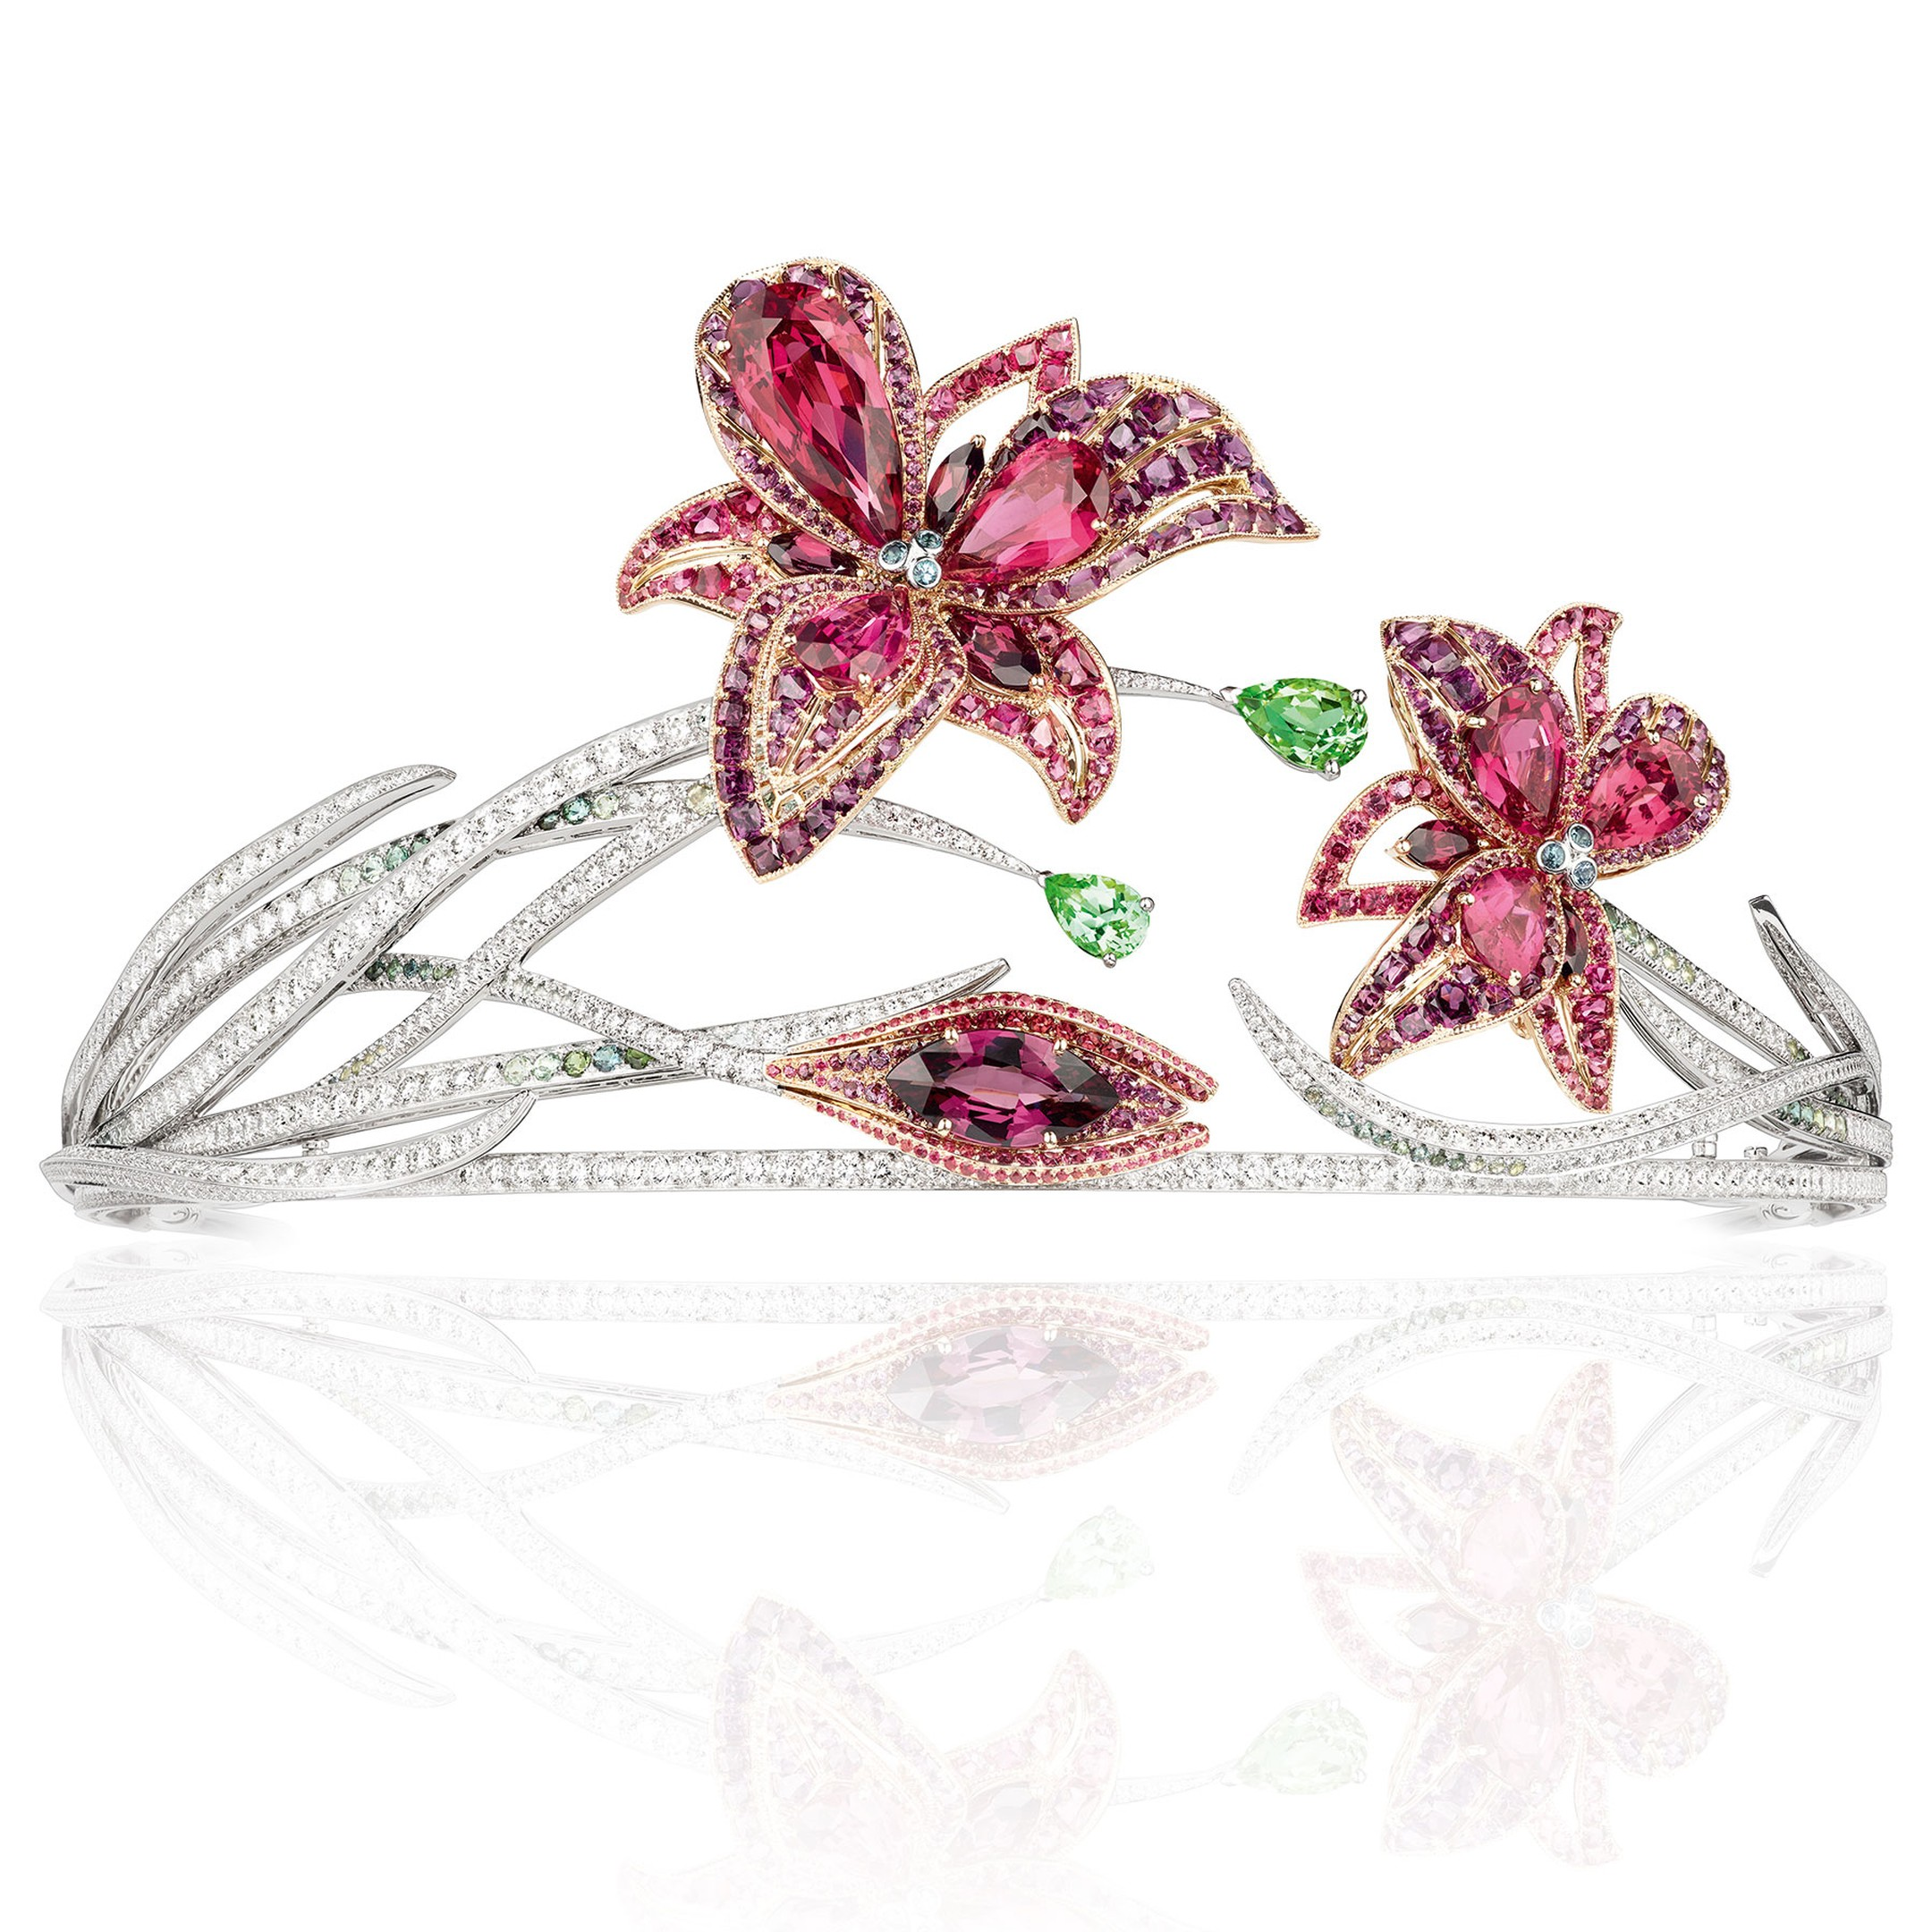 La Nature de Chaumet Passion Incarnat red spinel, garnet, tourmaline and diamond lily tiara, which transforms into a brooch or necklace